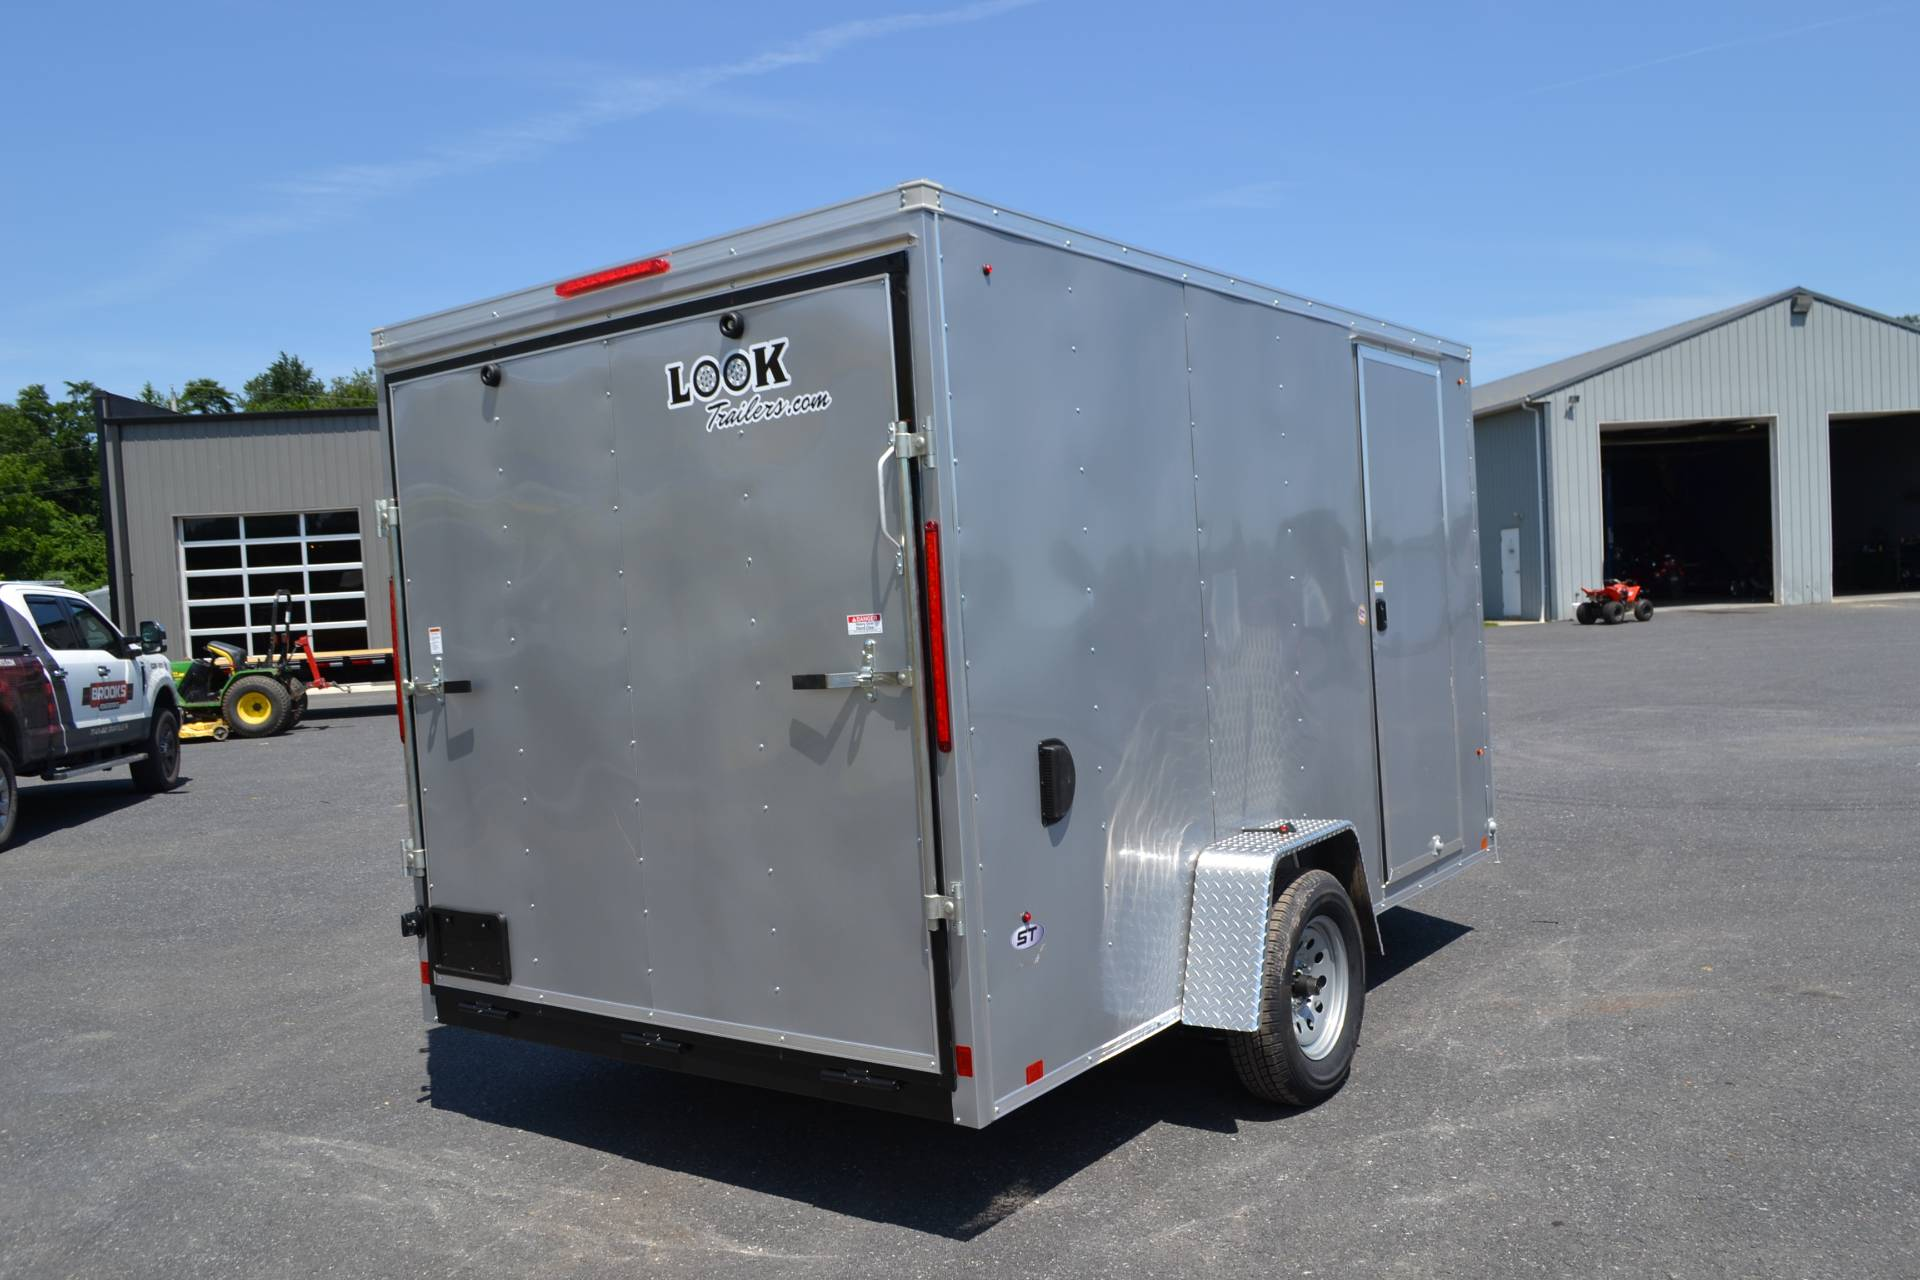 2020 Look Trailers 7X12 STDLX Cargo Trailer Ramp +6 in Harrisburg, Pennsylvania - Photo 3